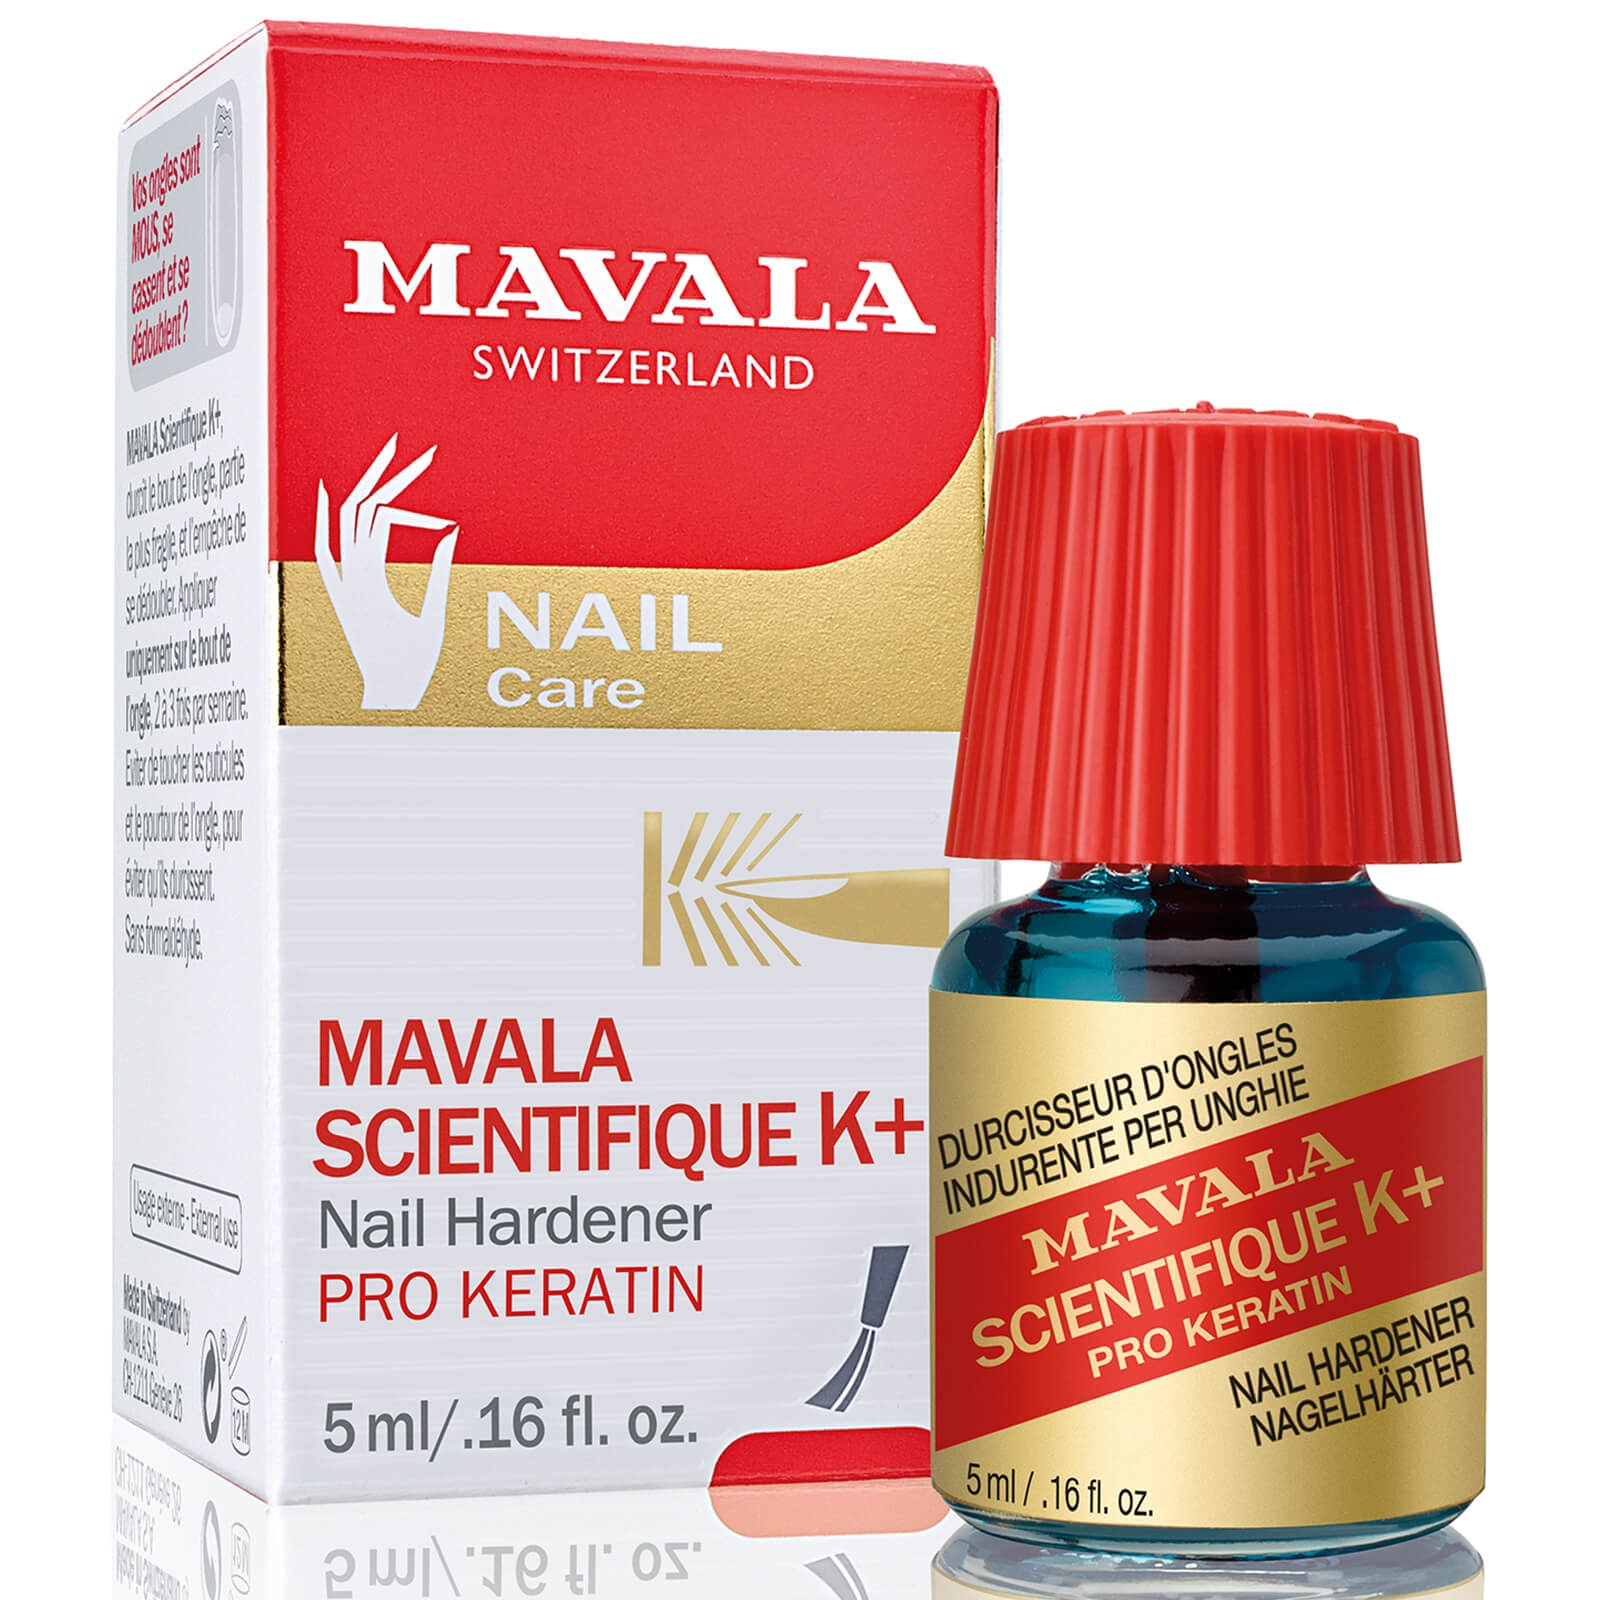 Mavala Scientifique K+ Nail Hardener 5ml